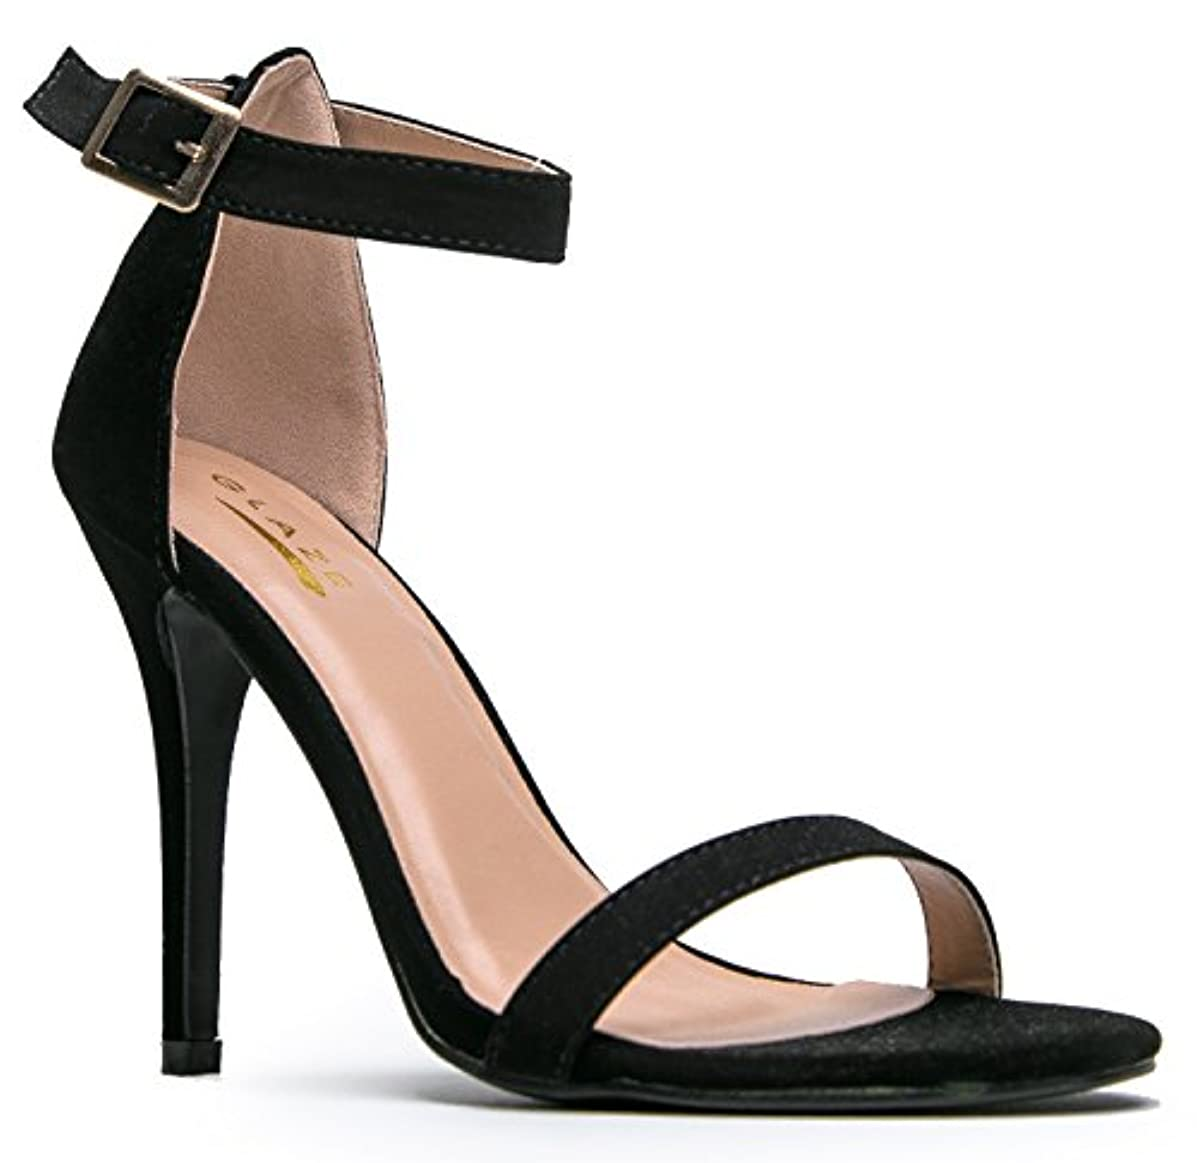 Womens Ankle Strap High Heel - Dress Wedding Party Sandal - Basic Pump Low Heel Marvel J. Adams